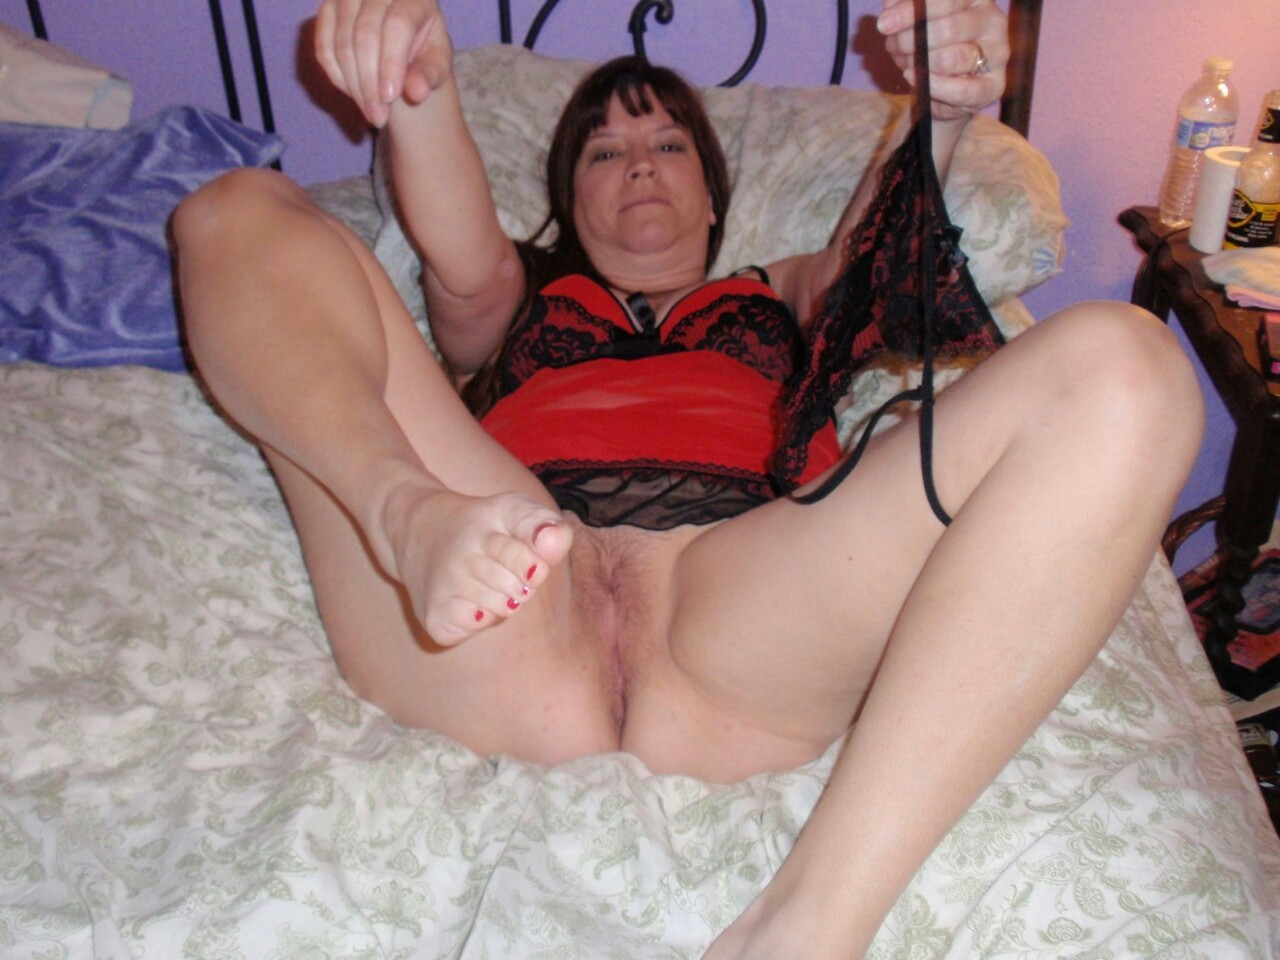 Renee a HOMEMADE GRANNY putting her panties inside her old pussy